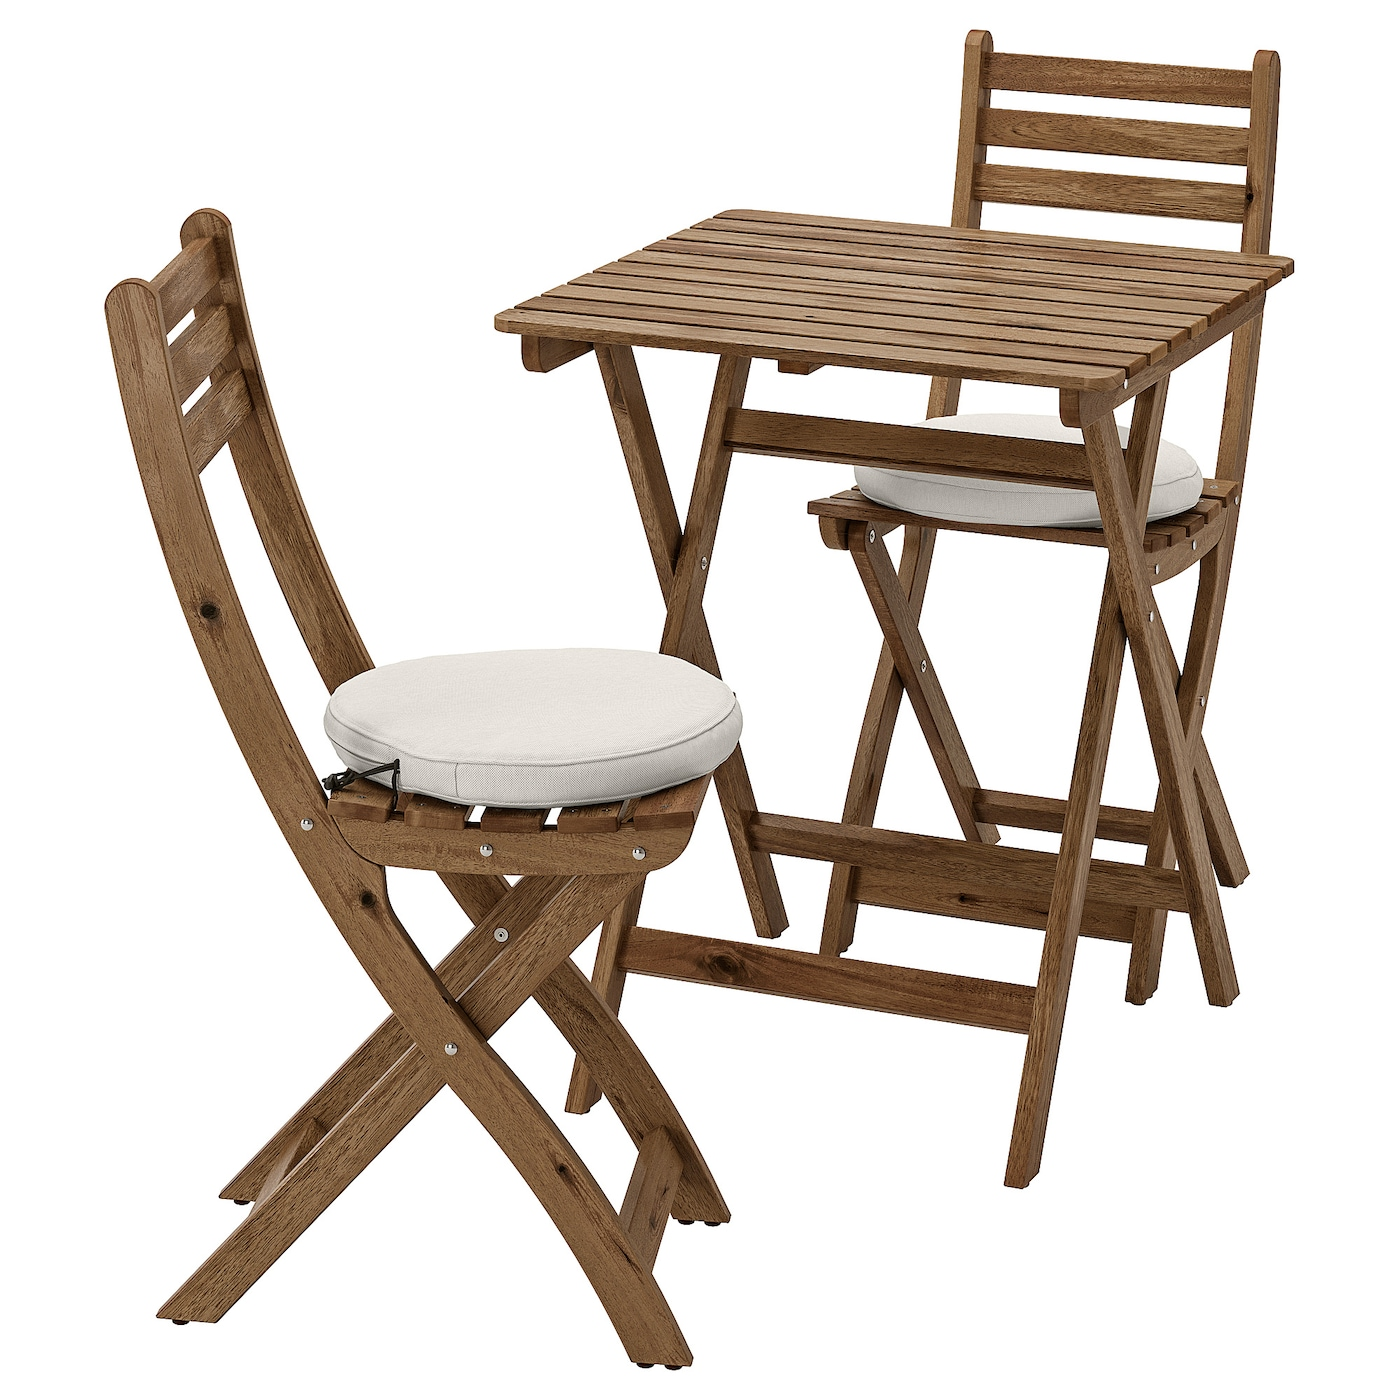 Askholmen Table And 2 Folding Chairs